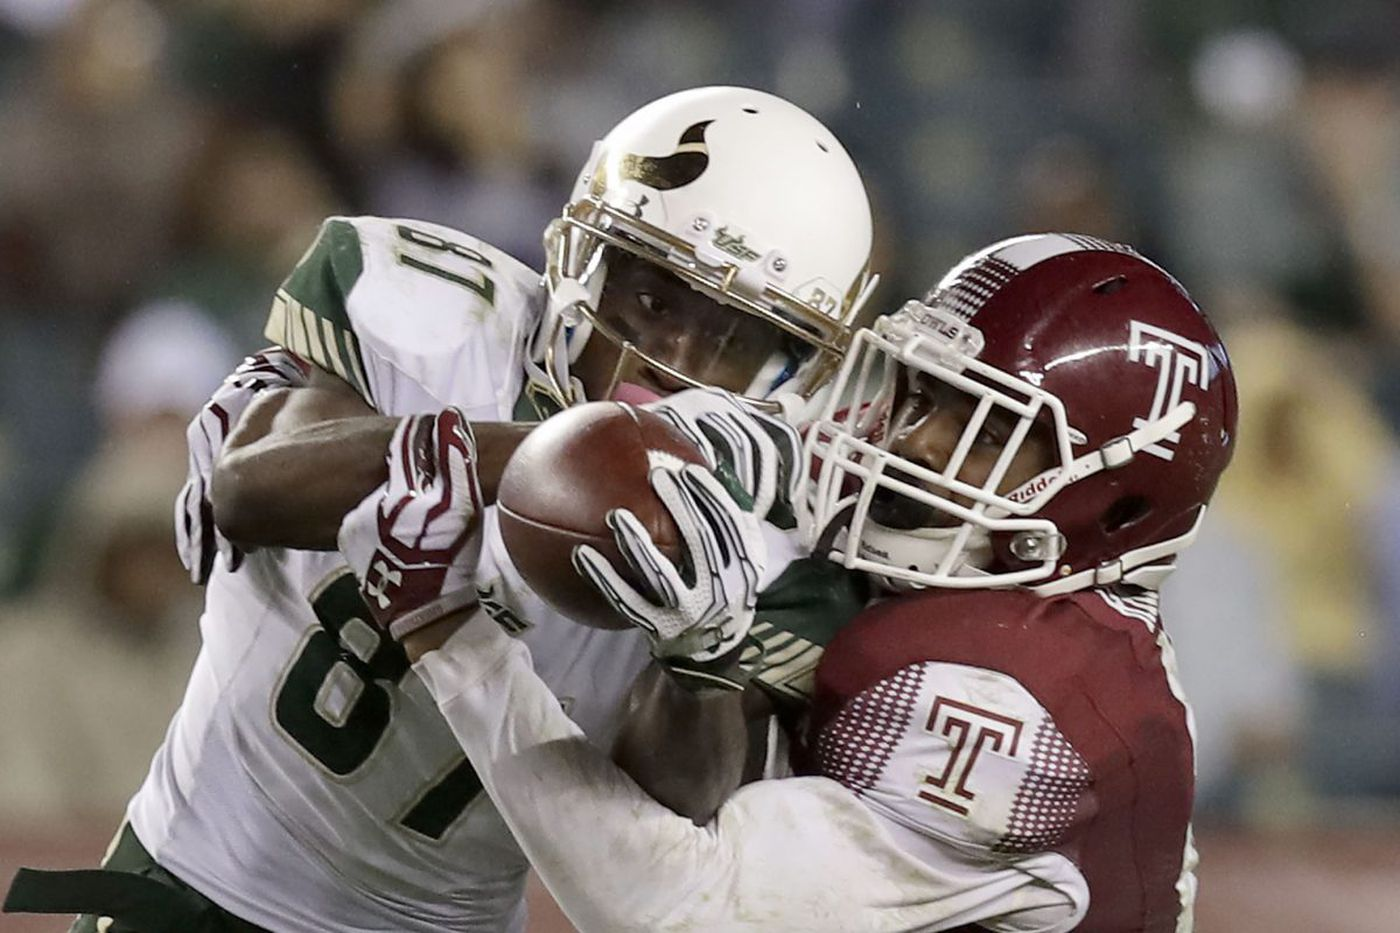 Temple football safety Delvon Randall a leader on the field, and on camera, too